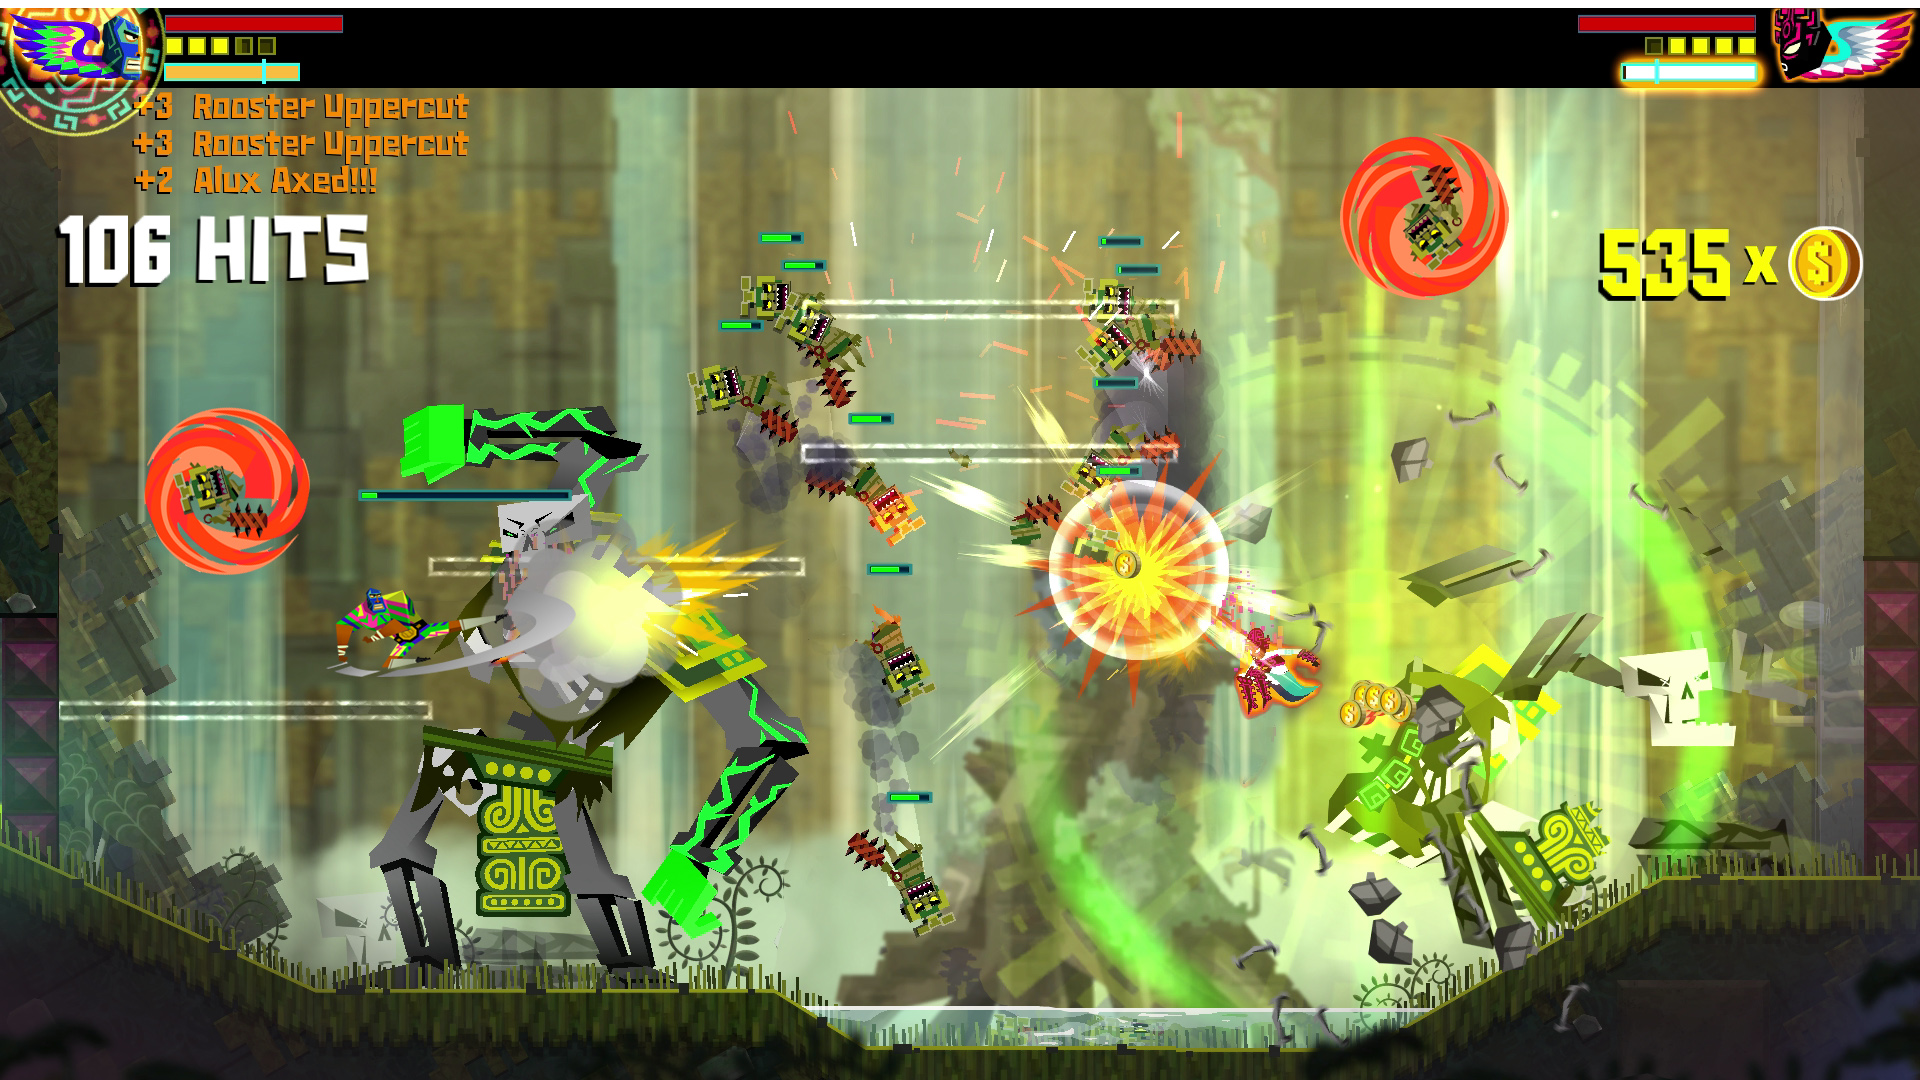 Bring Guacamelee!: Super Turbo Championship Edition to PS3/Vita owners!